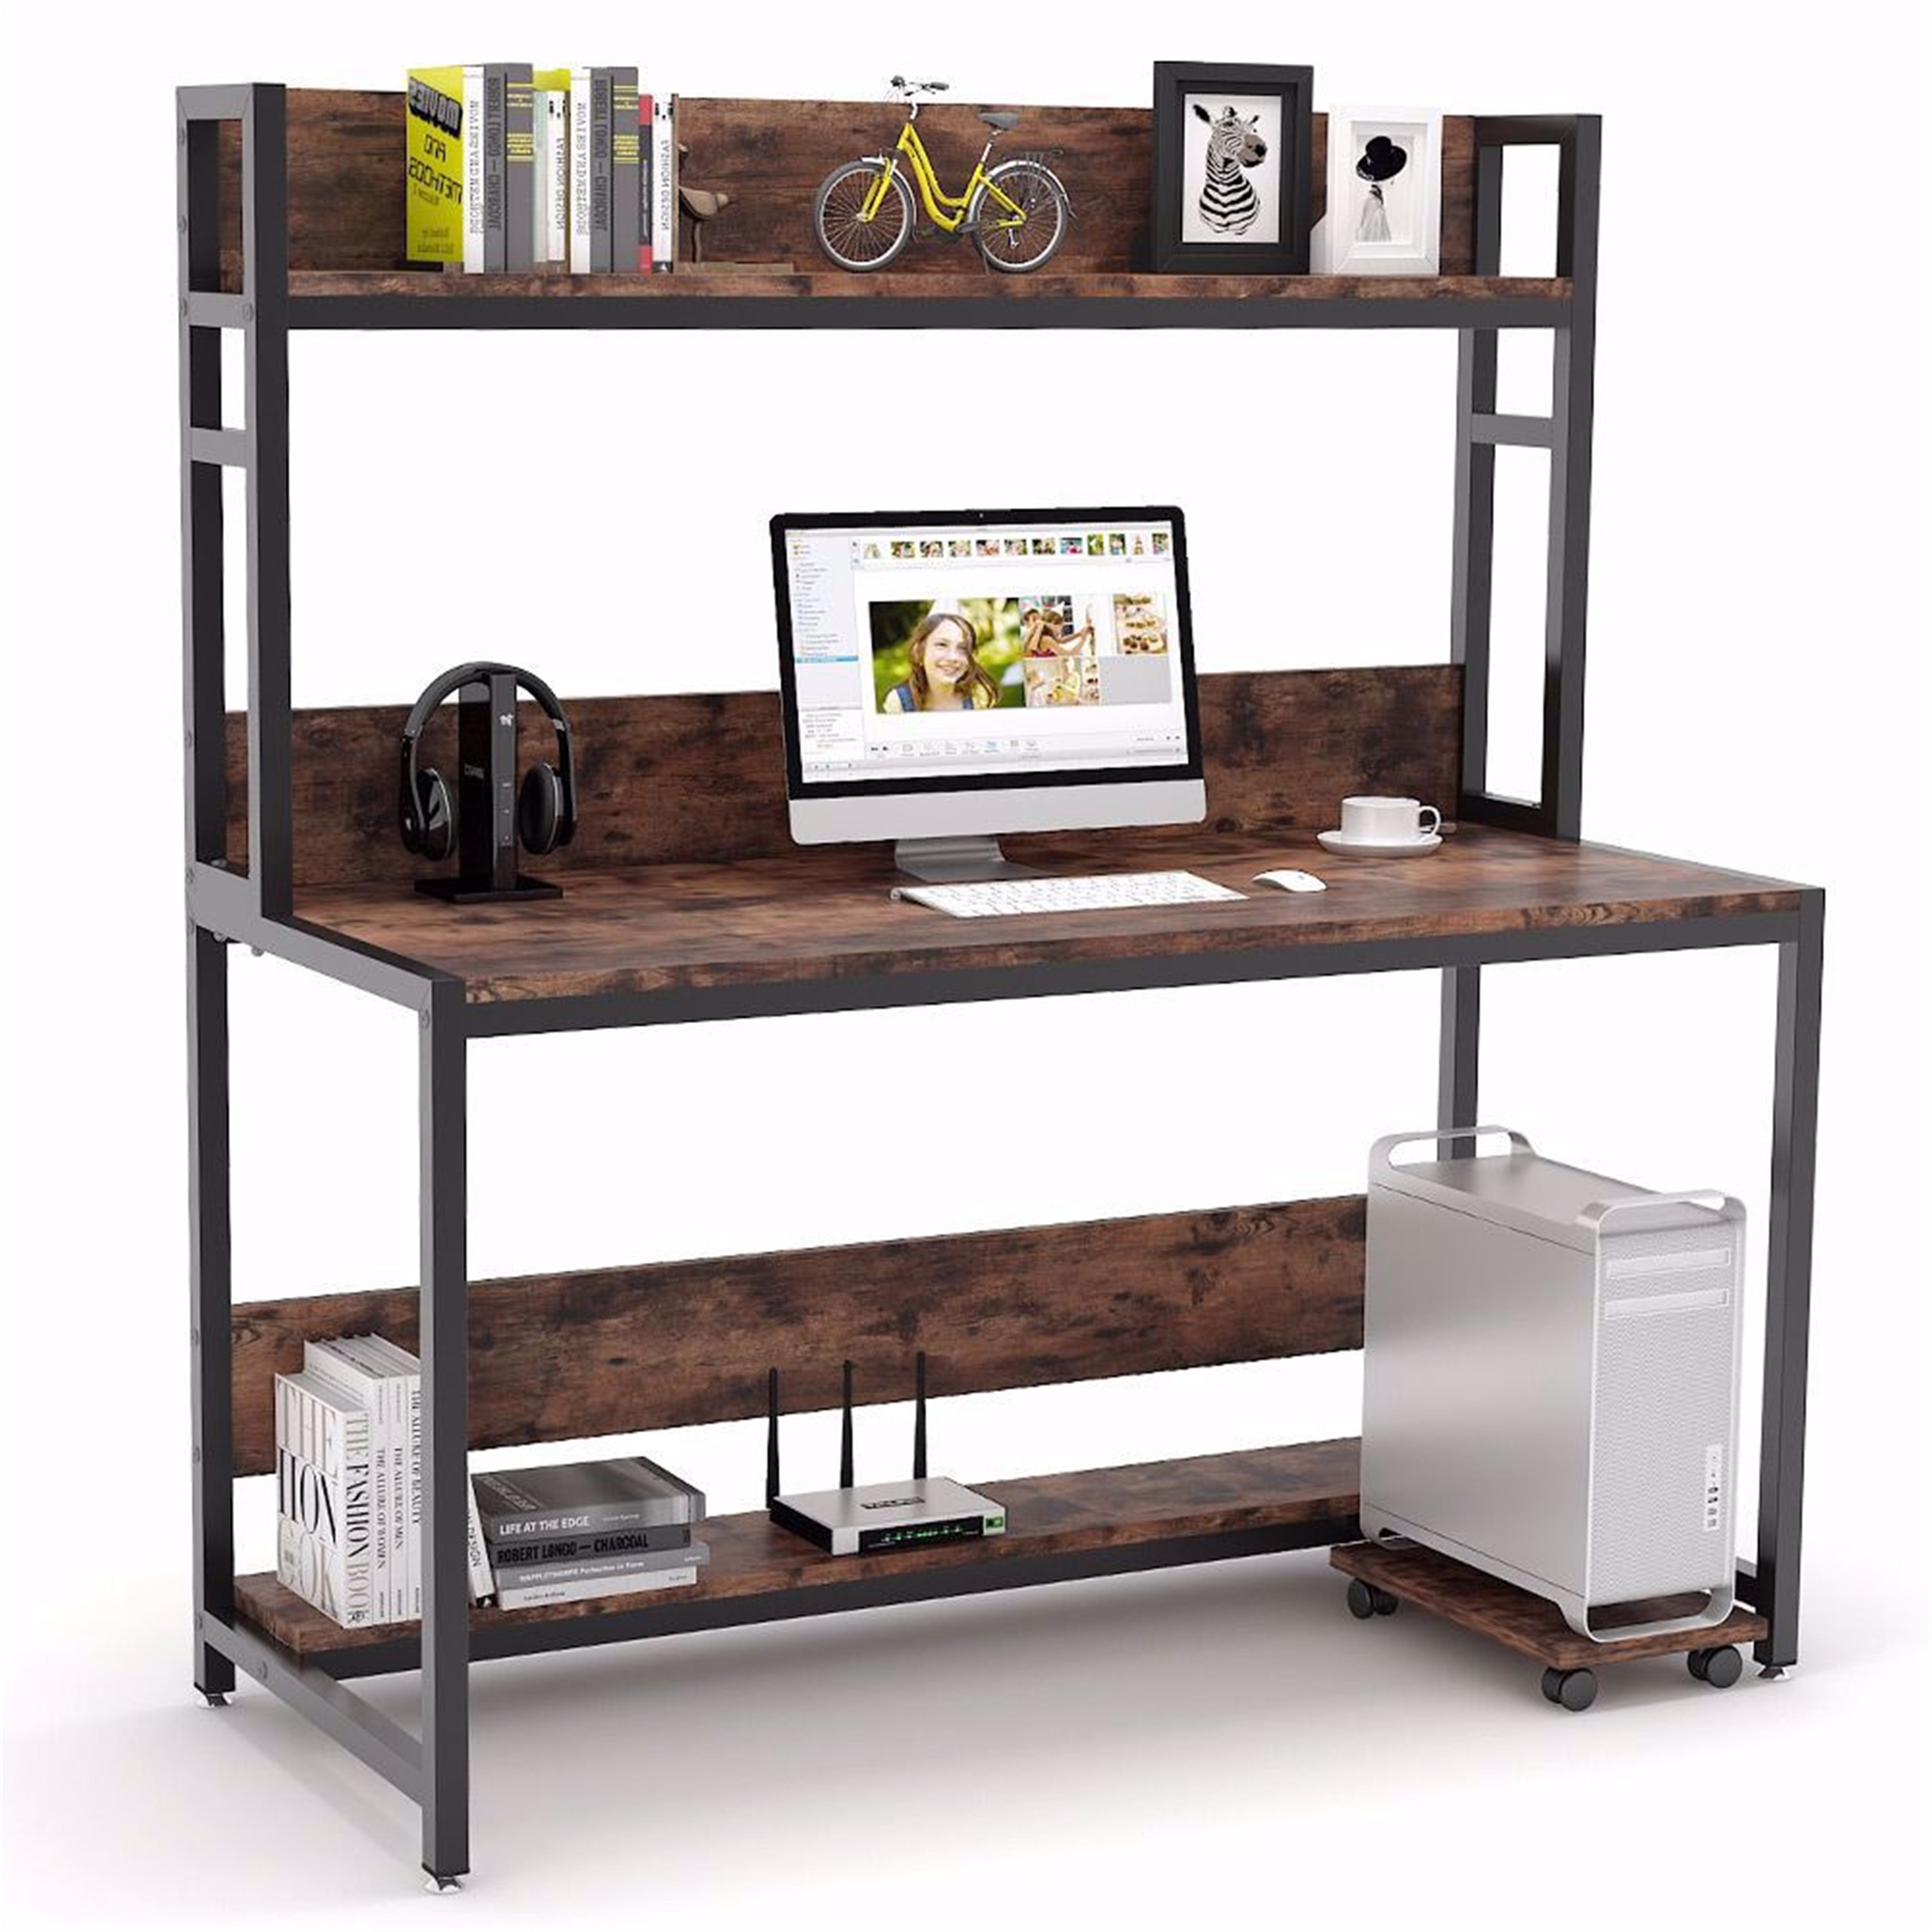 55 Inches Large Computer Desk With Hutch Overstock 31311798 White